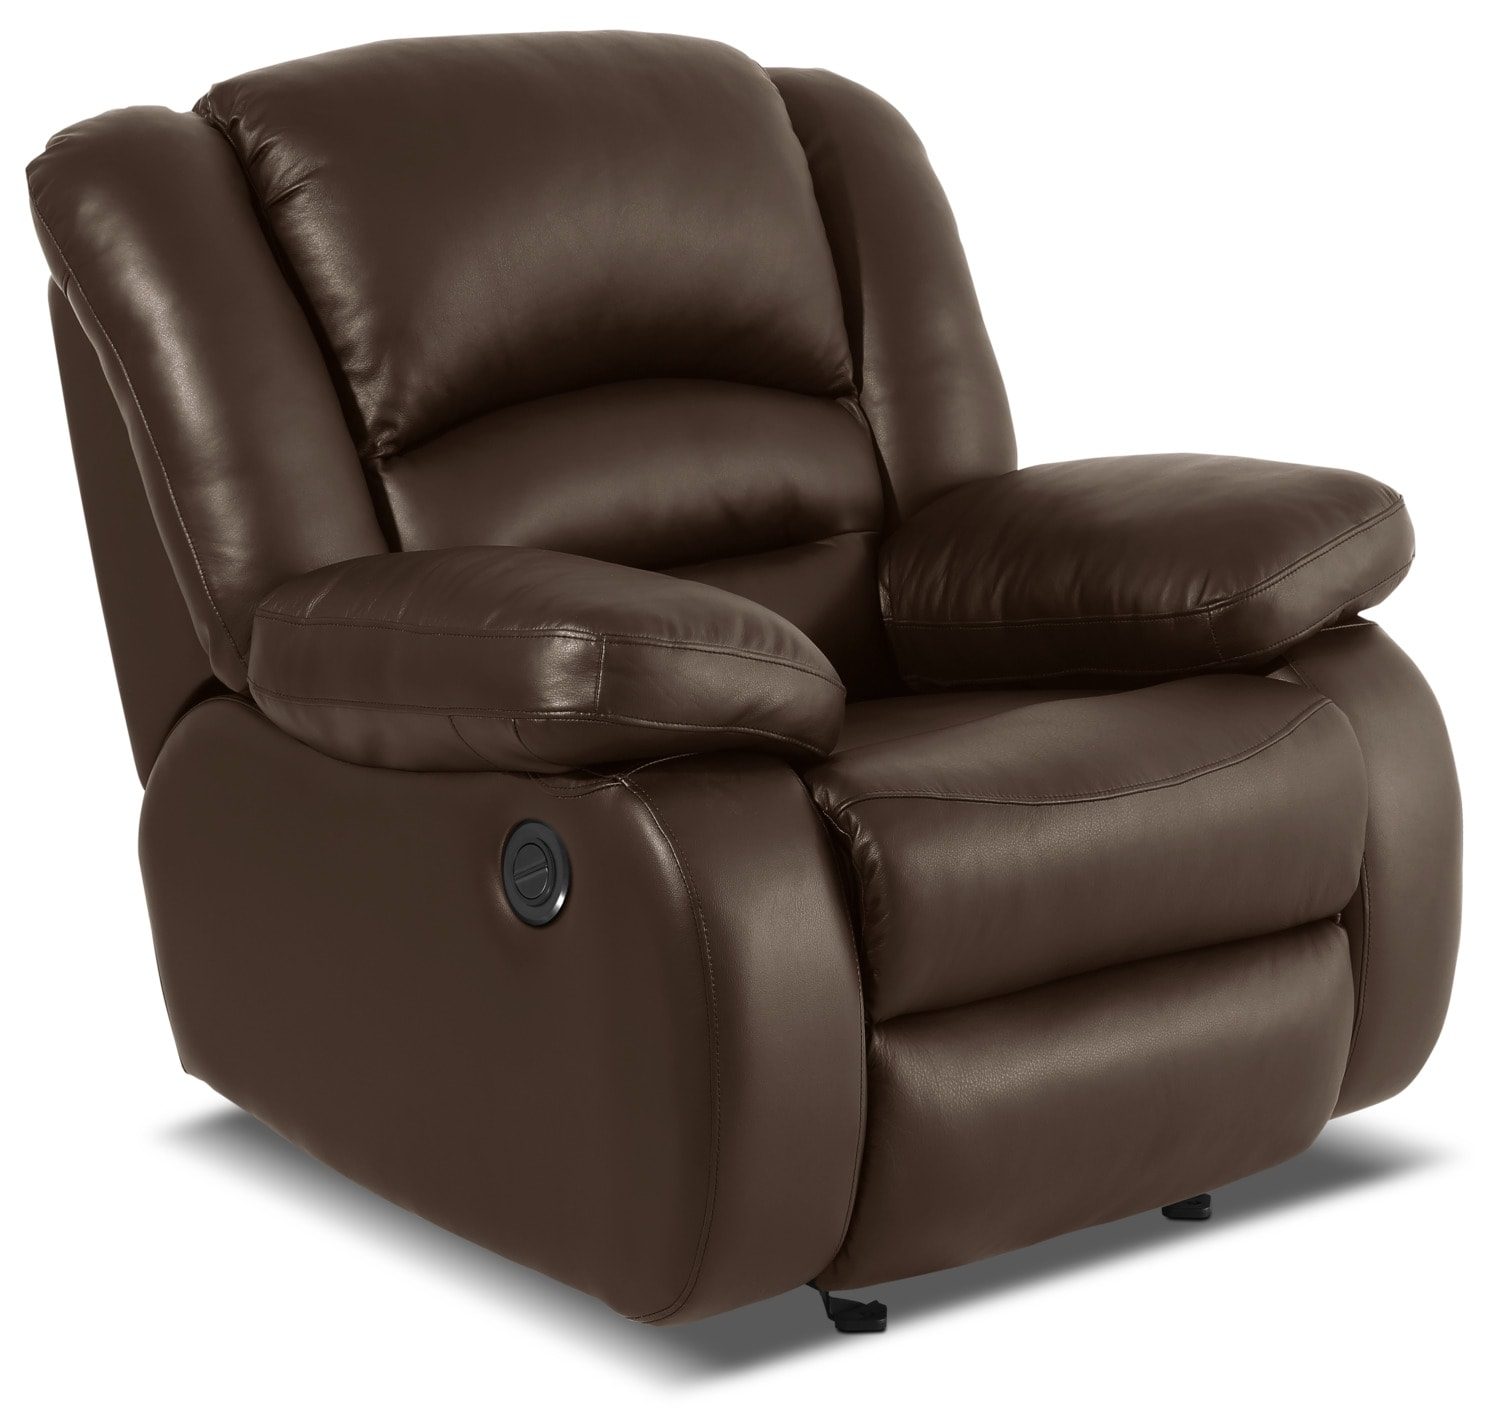 Toreno Genuine Leather Power Reclining Chair – Brown